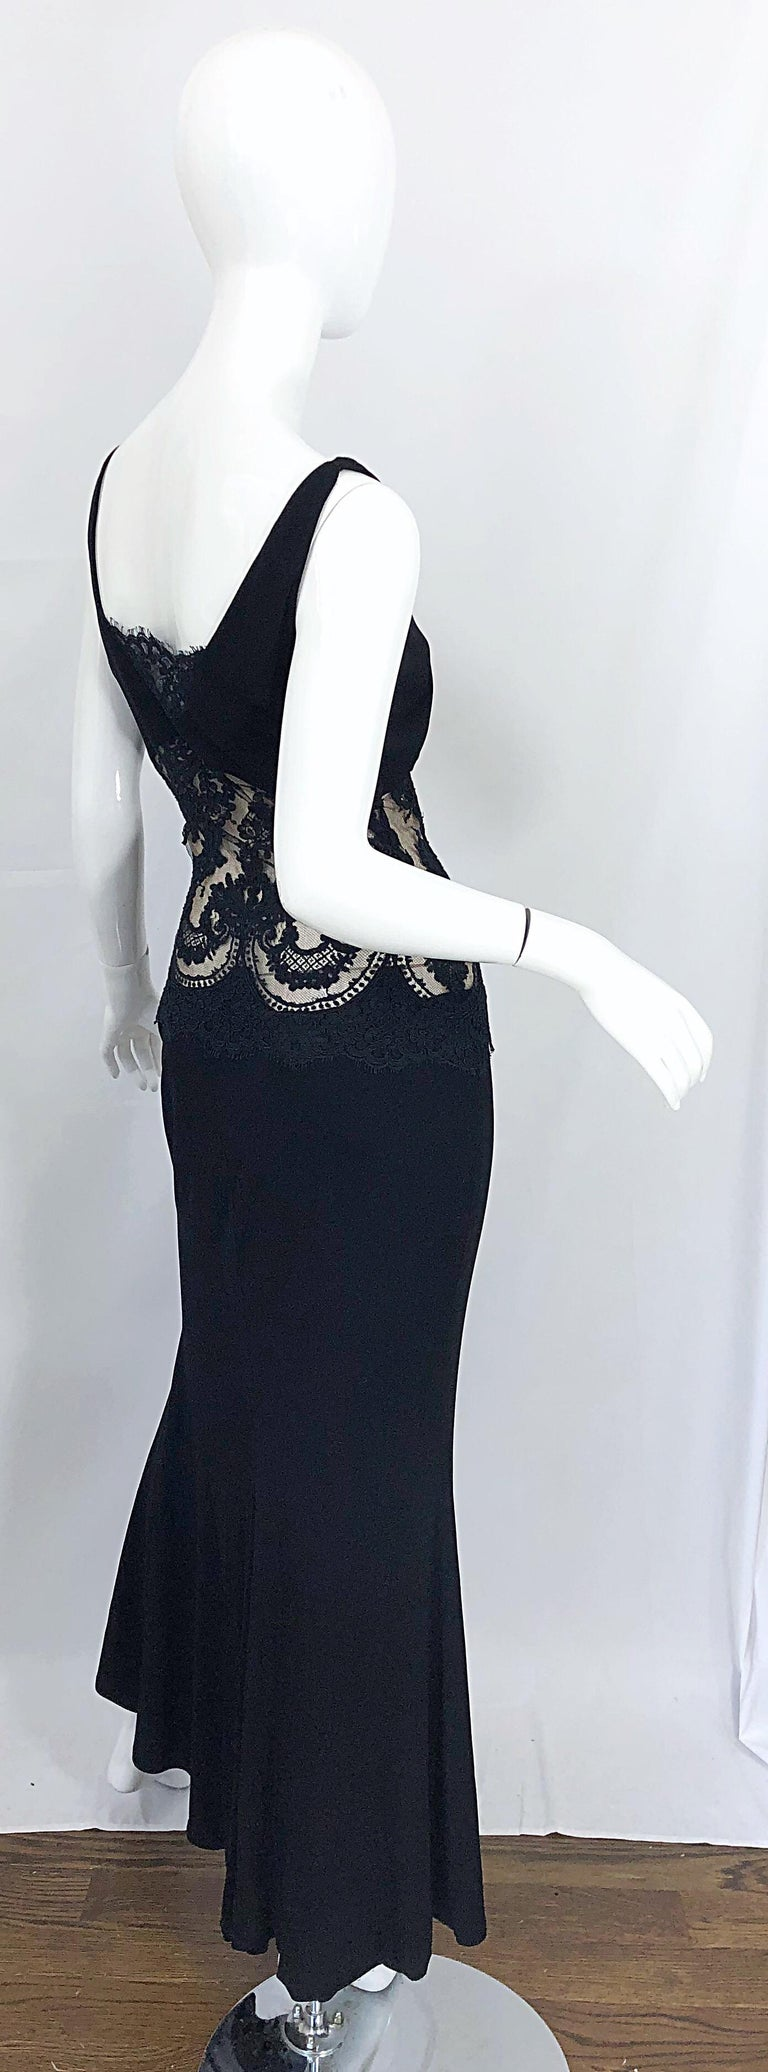 1990s Randolph Duke Black Sexy Lace Cut-Out Sleeveless Vintage 90s Evening Gown For Sale 7